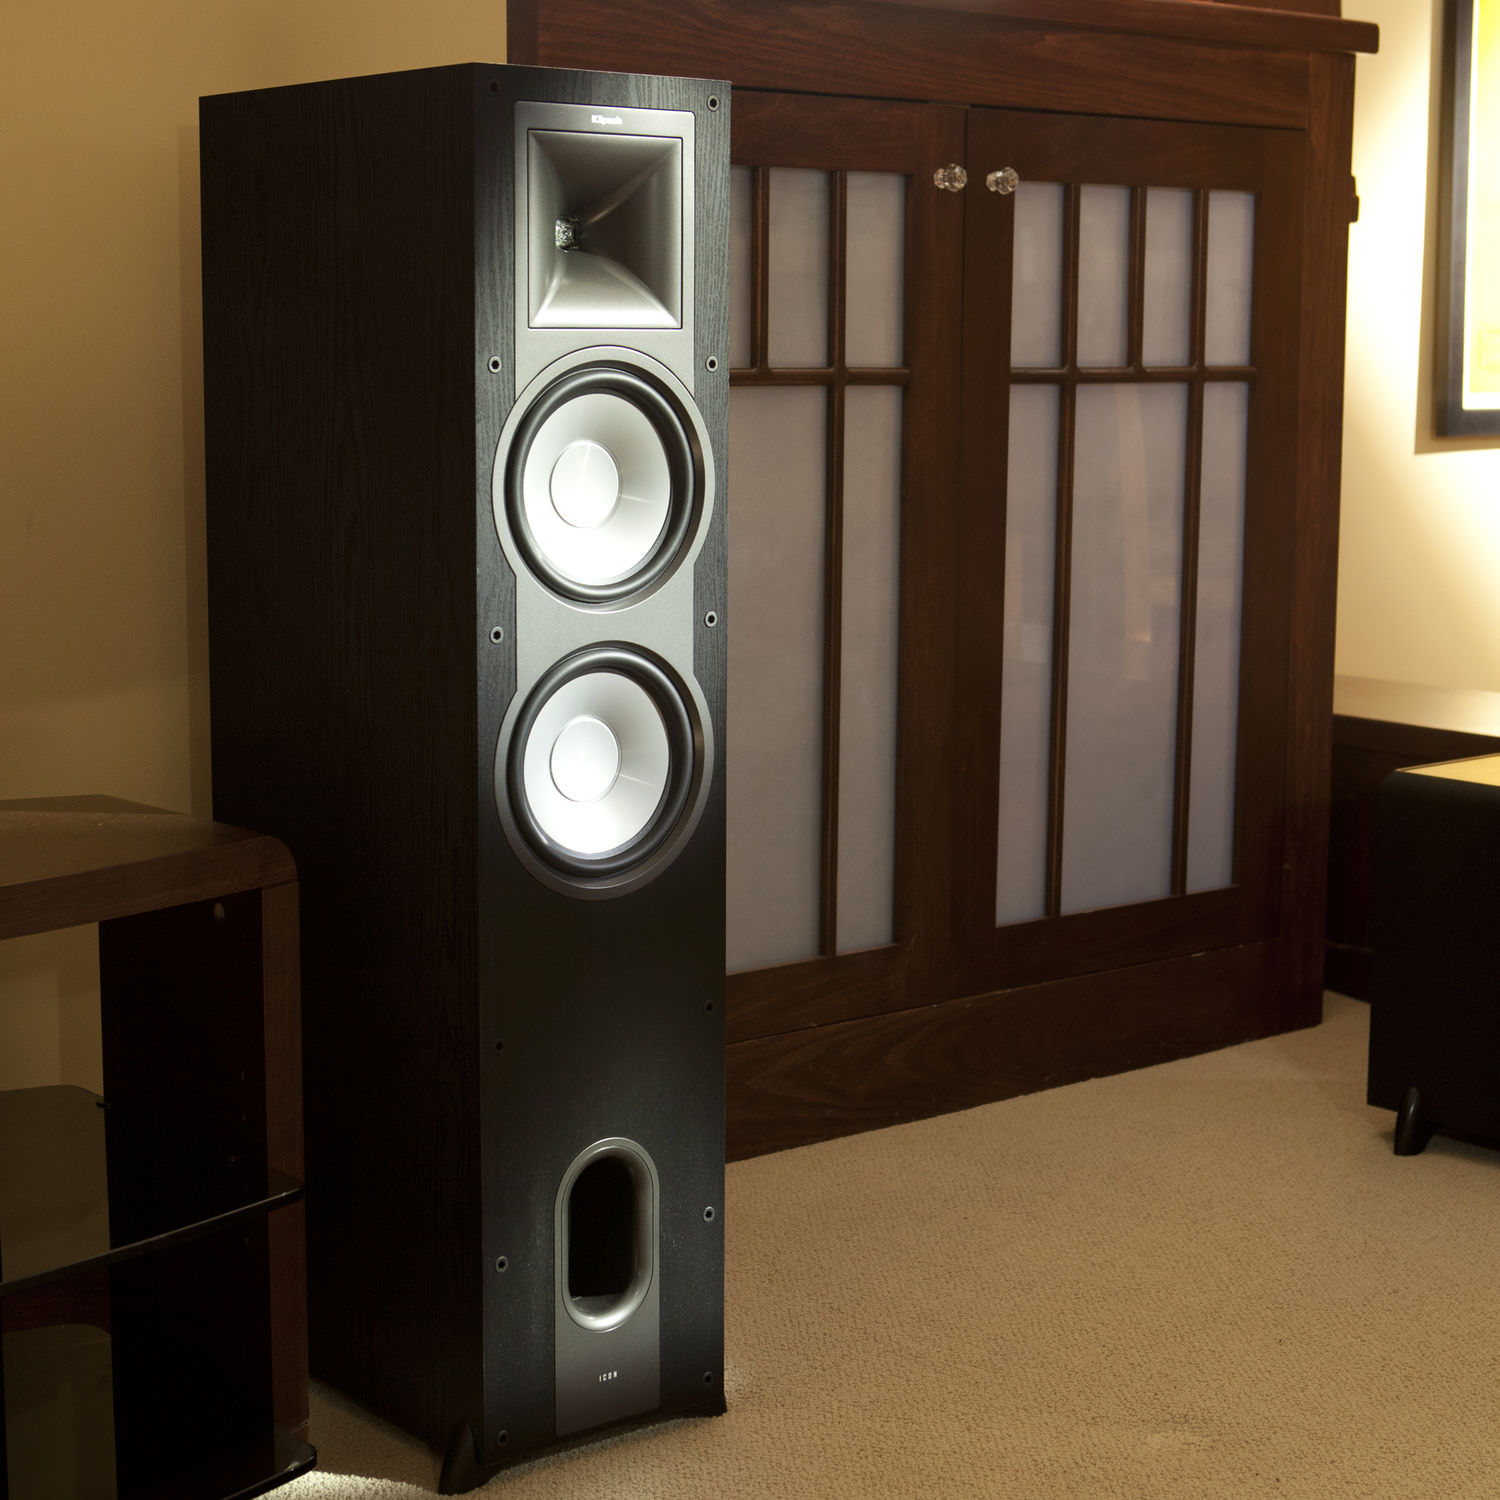 resized klipsch forums floors system kg speakers systemview view floor classifieds stereonet topic fs audio